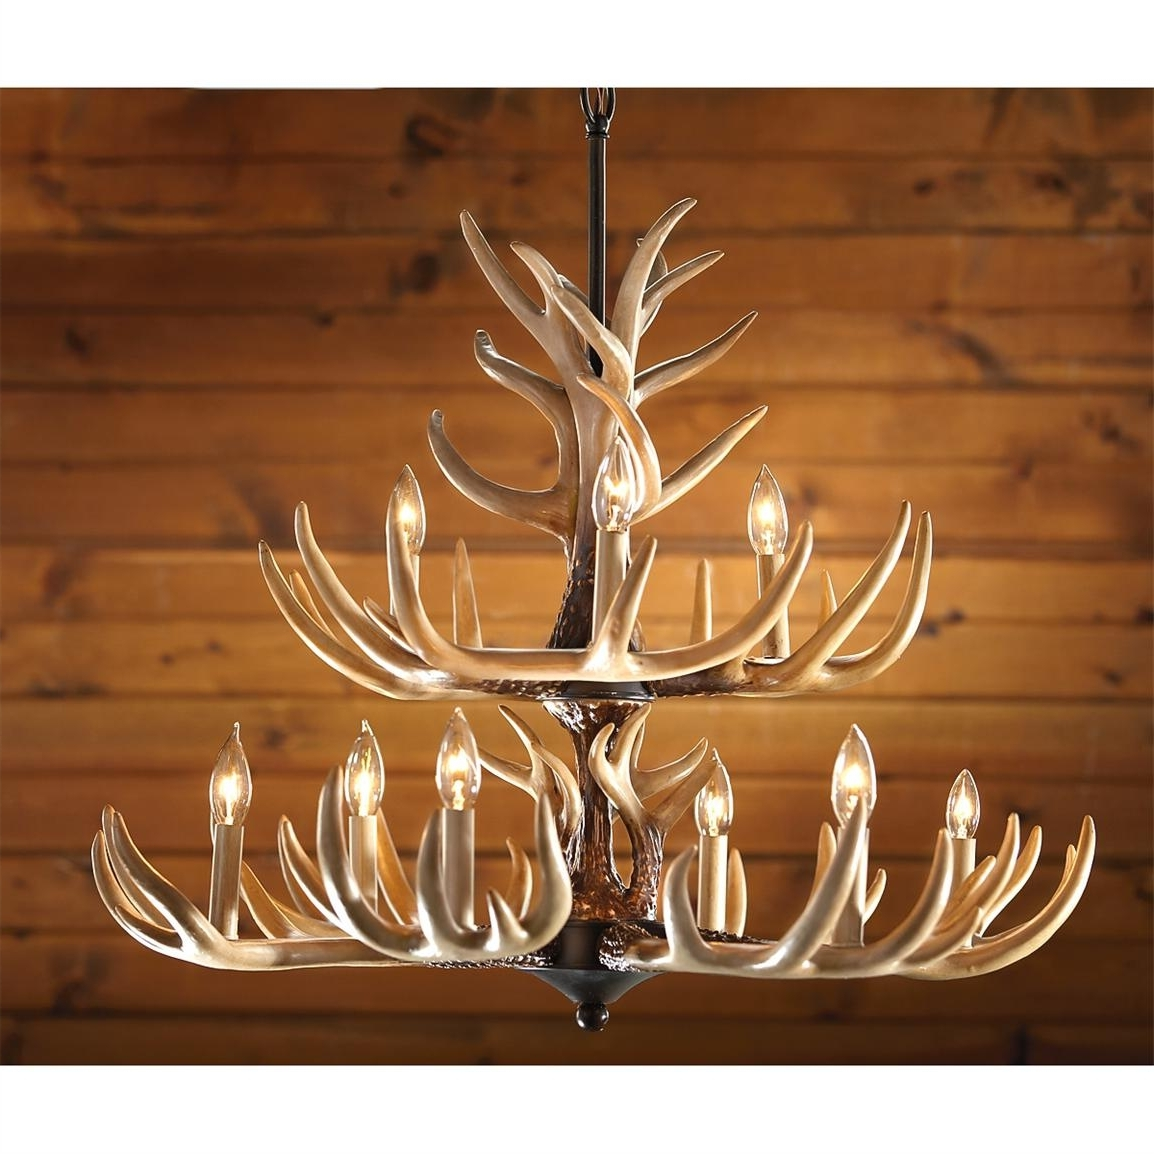 Antler Chandelier With Regard To Preferred Castlecreek 9 Light Whitetail Antler Chandelier – 226093, Lighting (View 4 of 20)